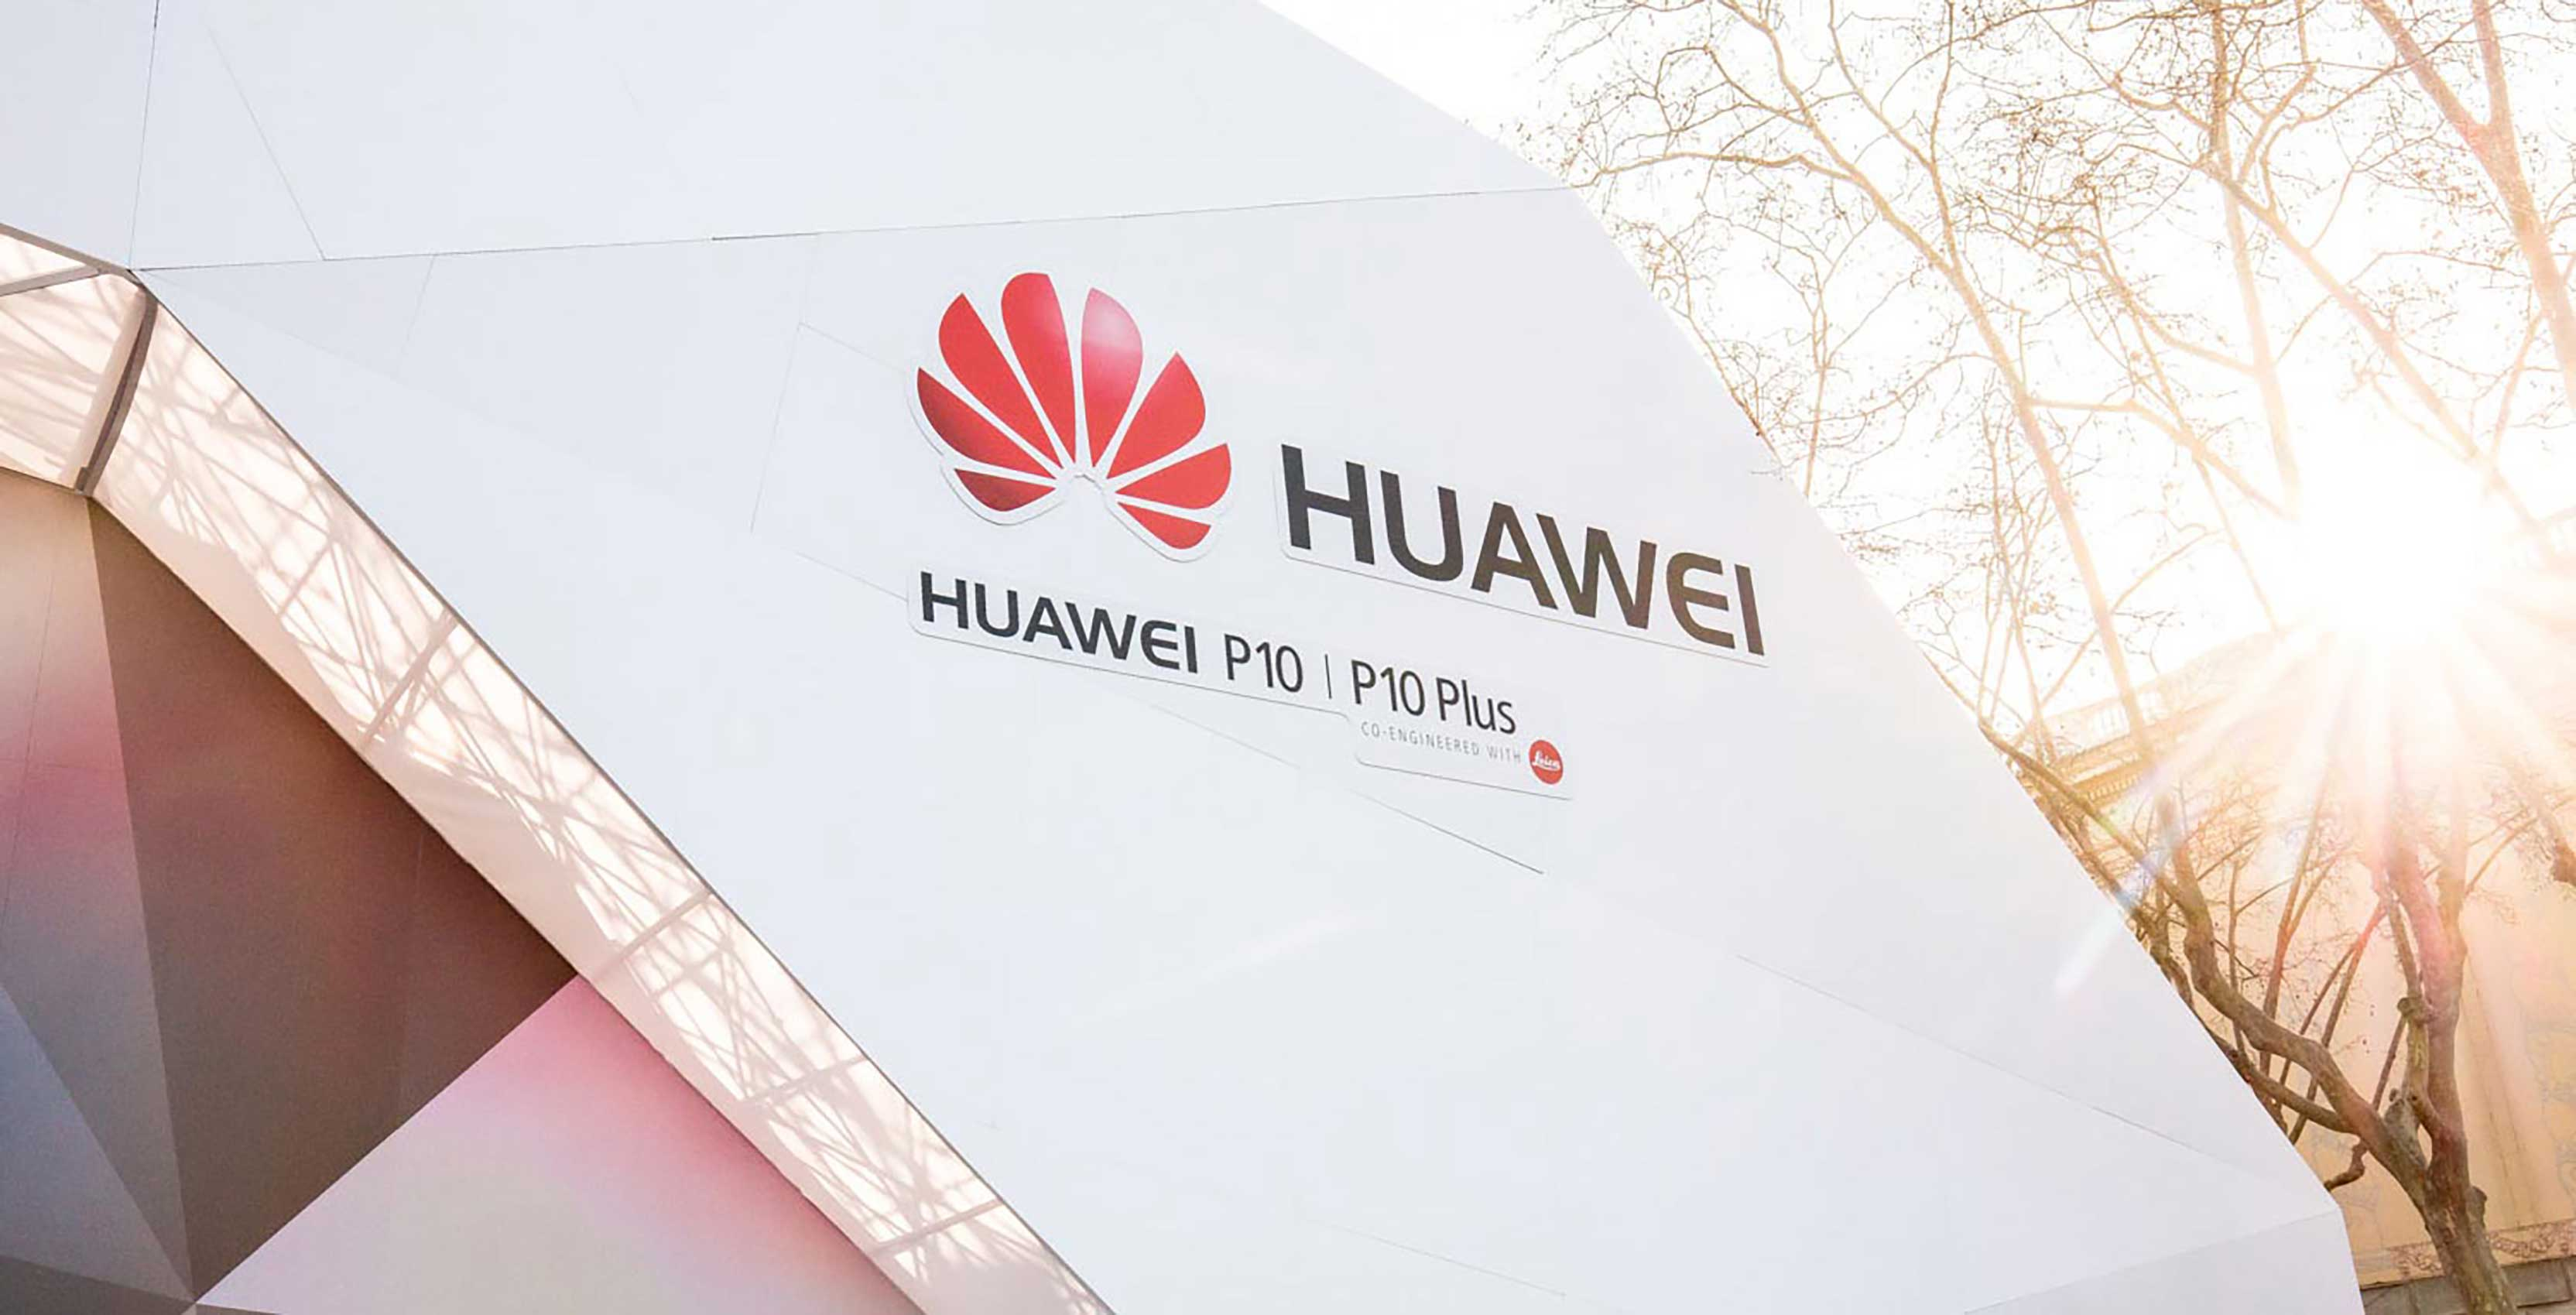 Huawei: Apple at disadvantage with Kirin 960 smartphone chip arriving soon